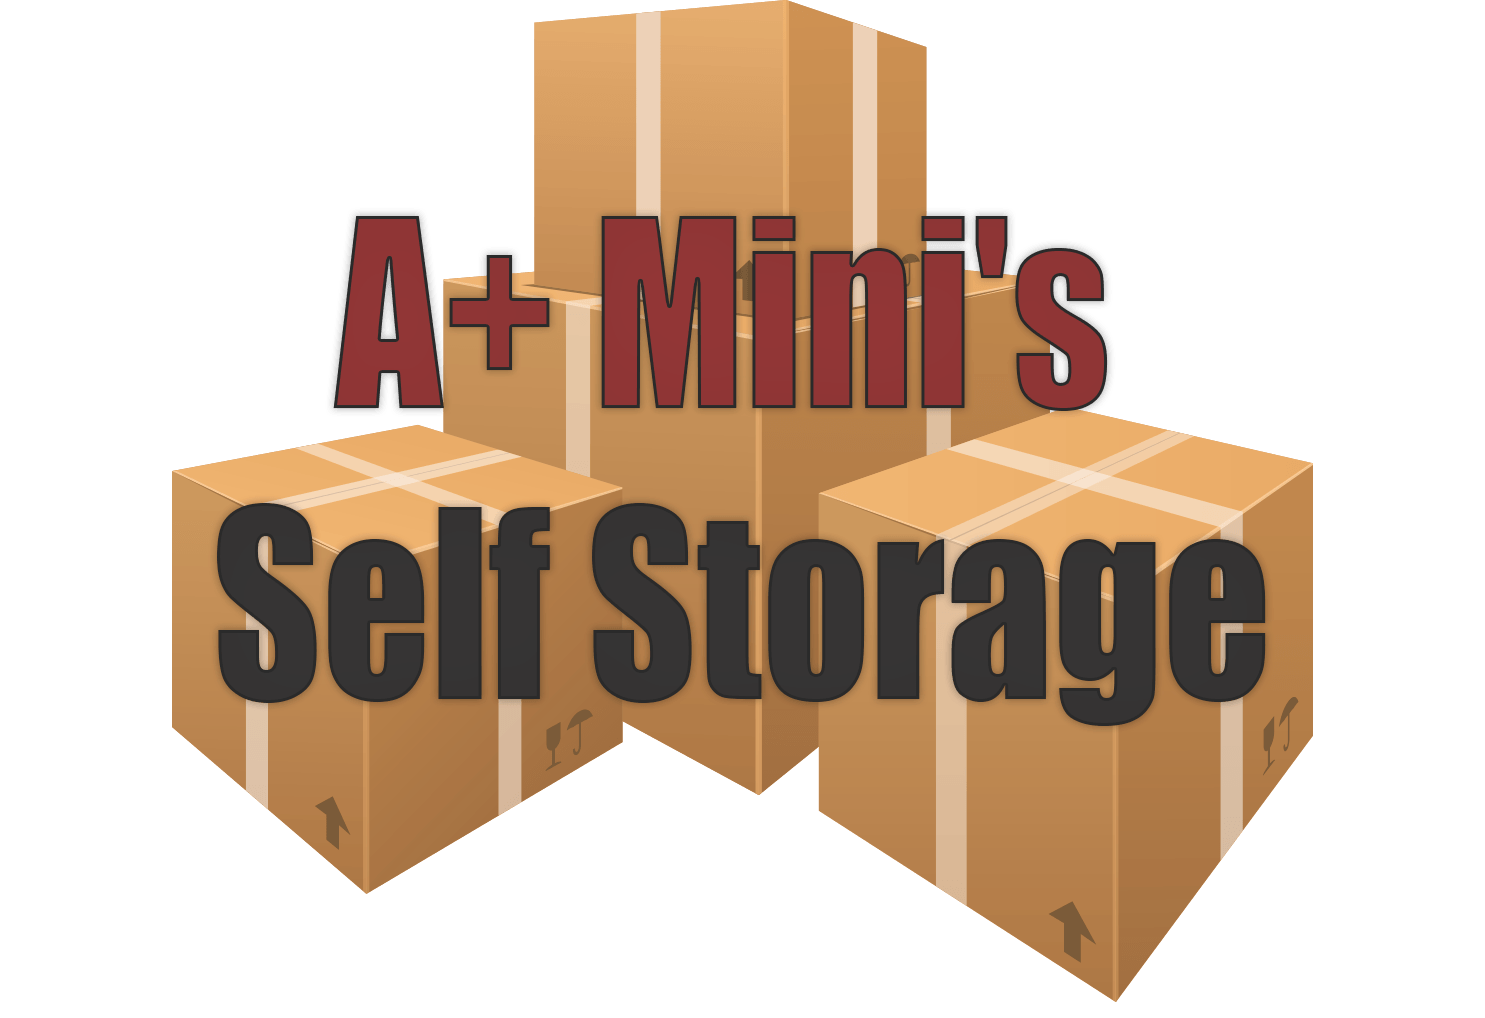 A+ mini self storage logo